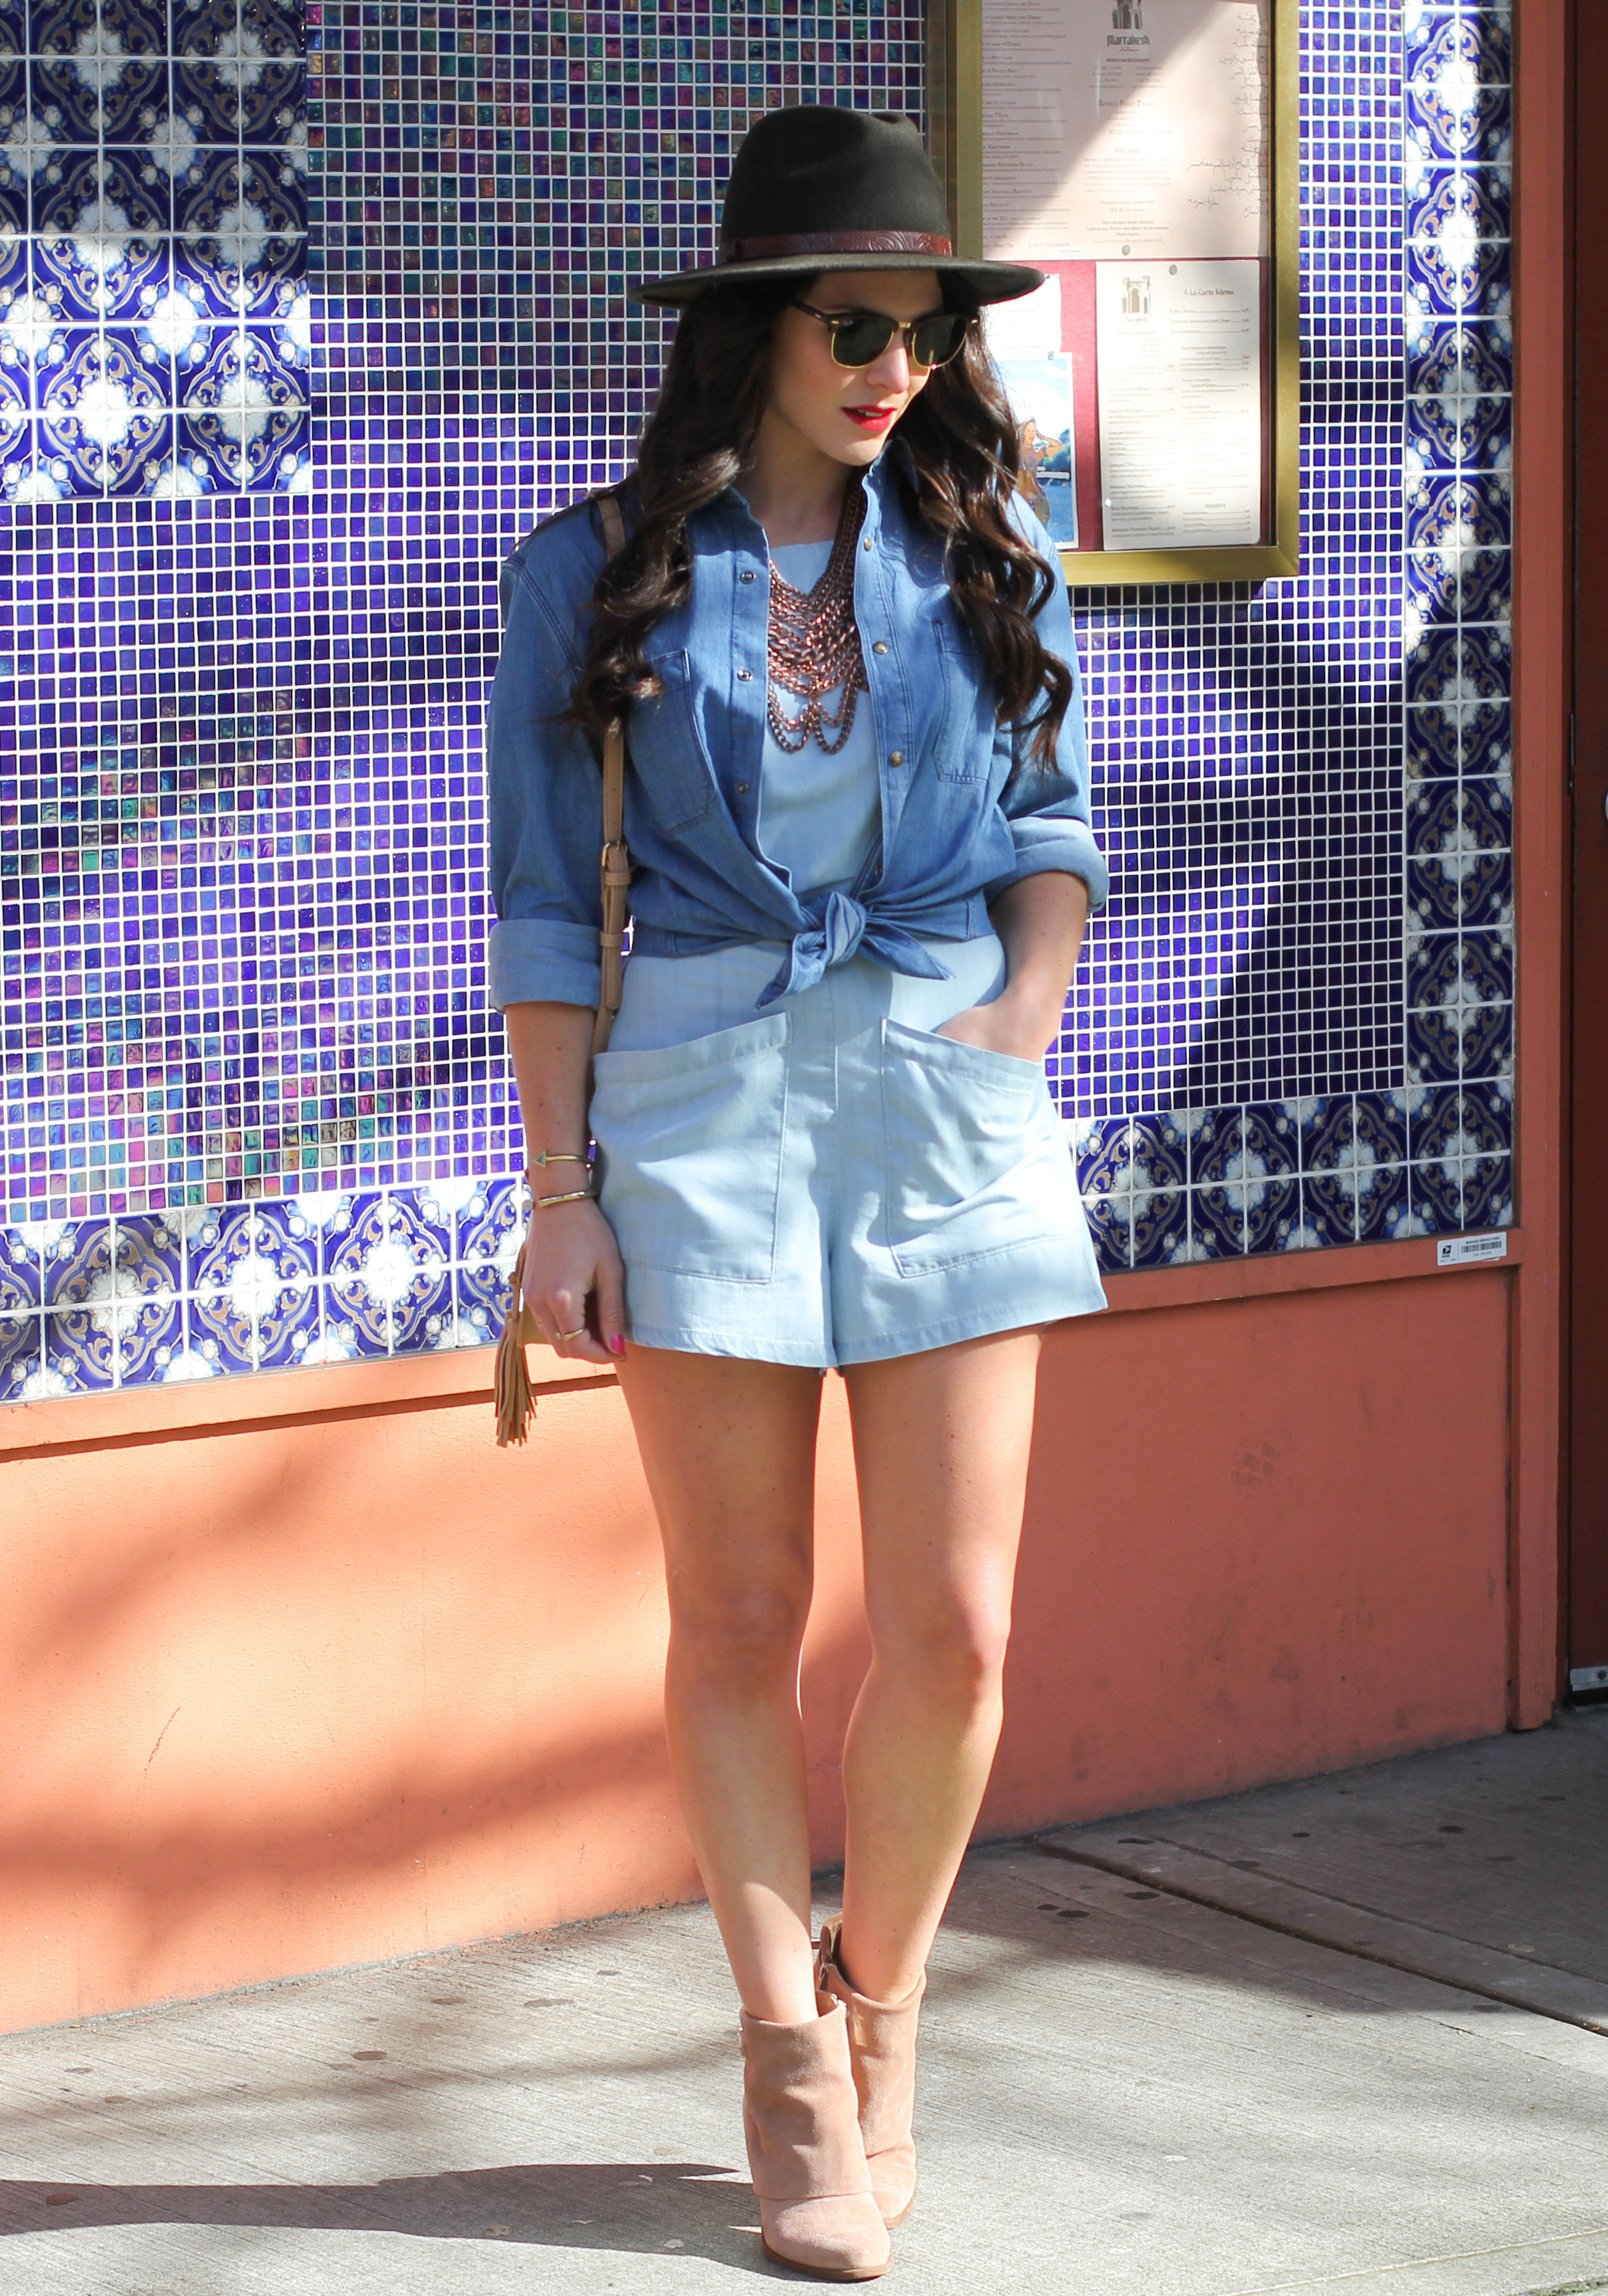 Spring Outfit, Denim Boyfriend Shirt, BDG High Neck Chambray Romper, Baublebar Courtney Bib Necklace, Green Fedora, Tan Suede Booties, & Tan Crossbody with Tassels